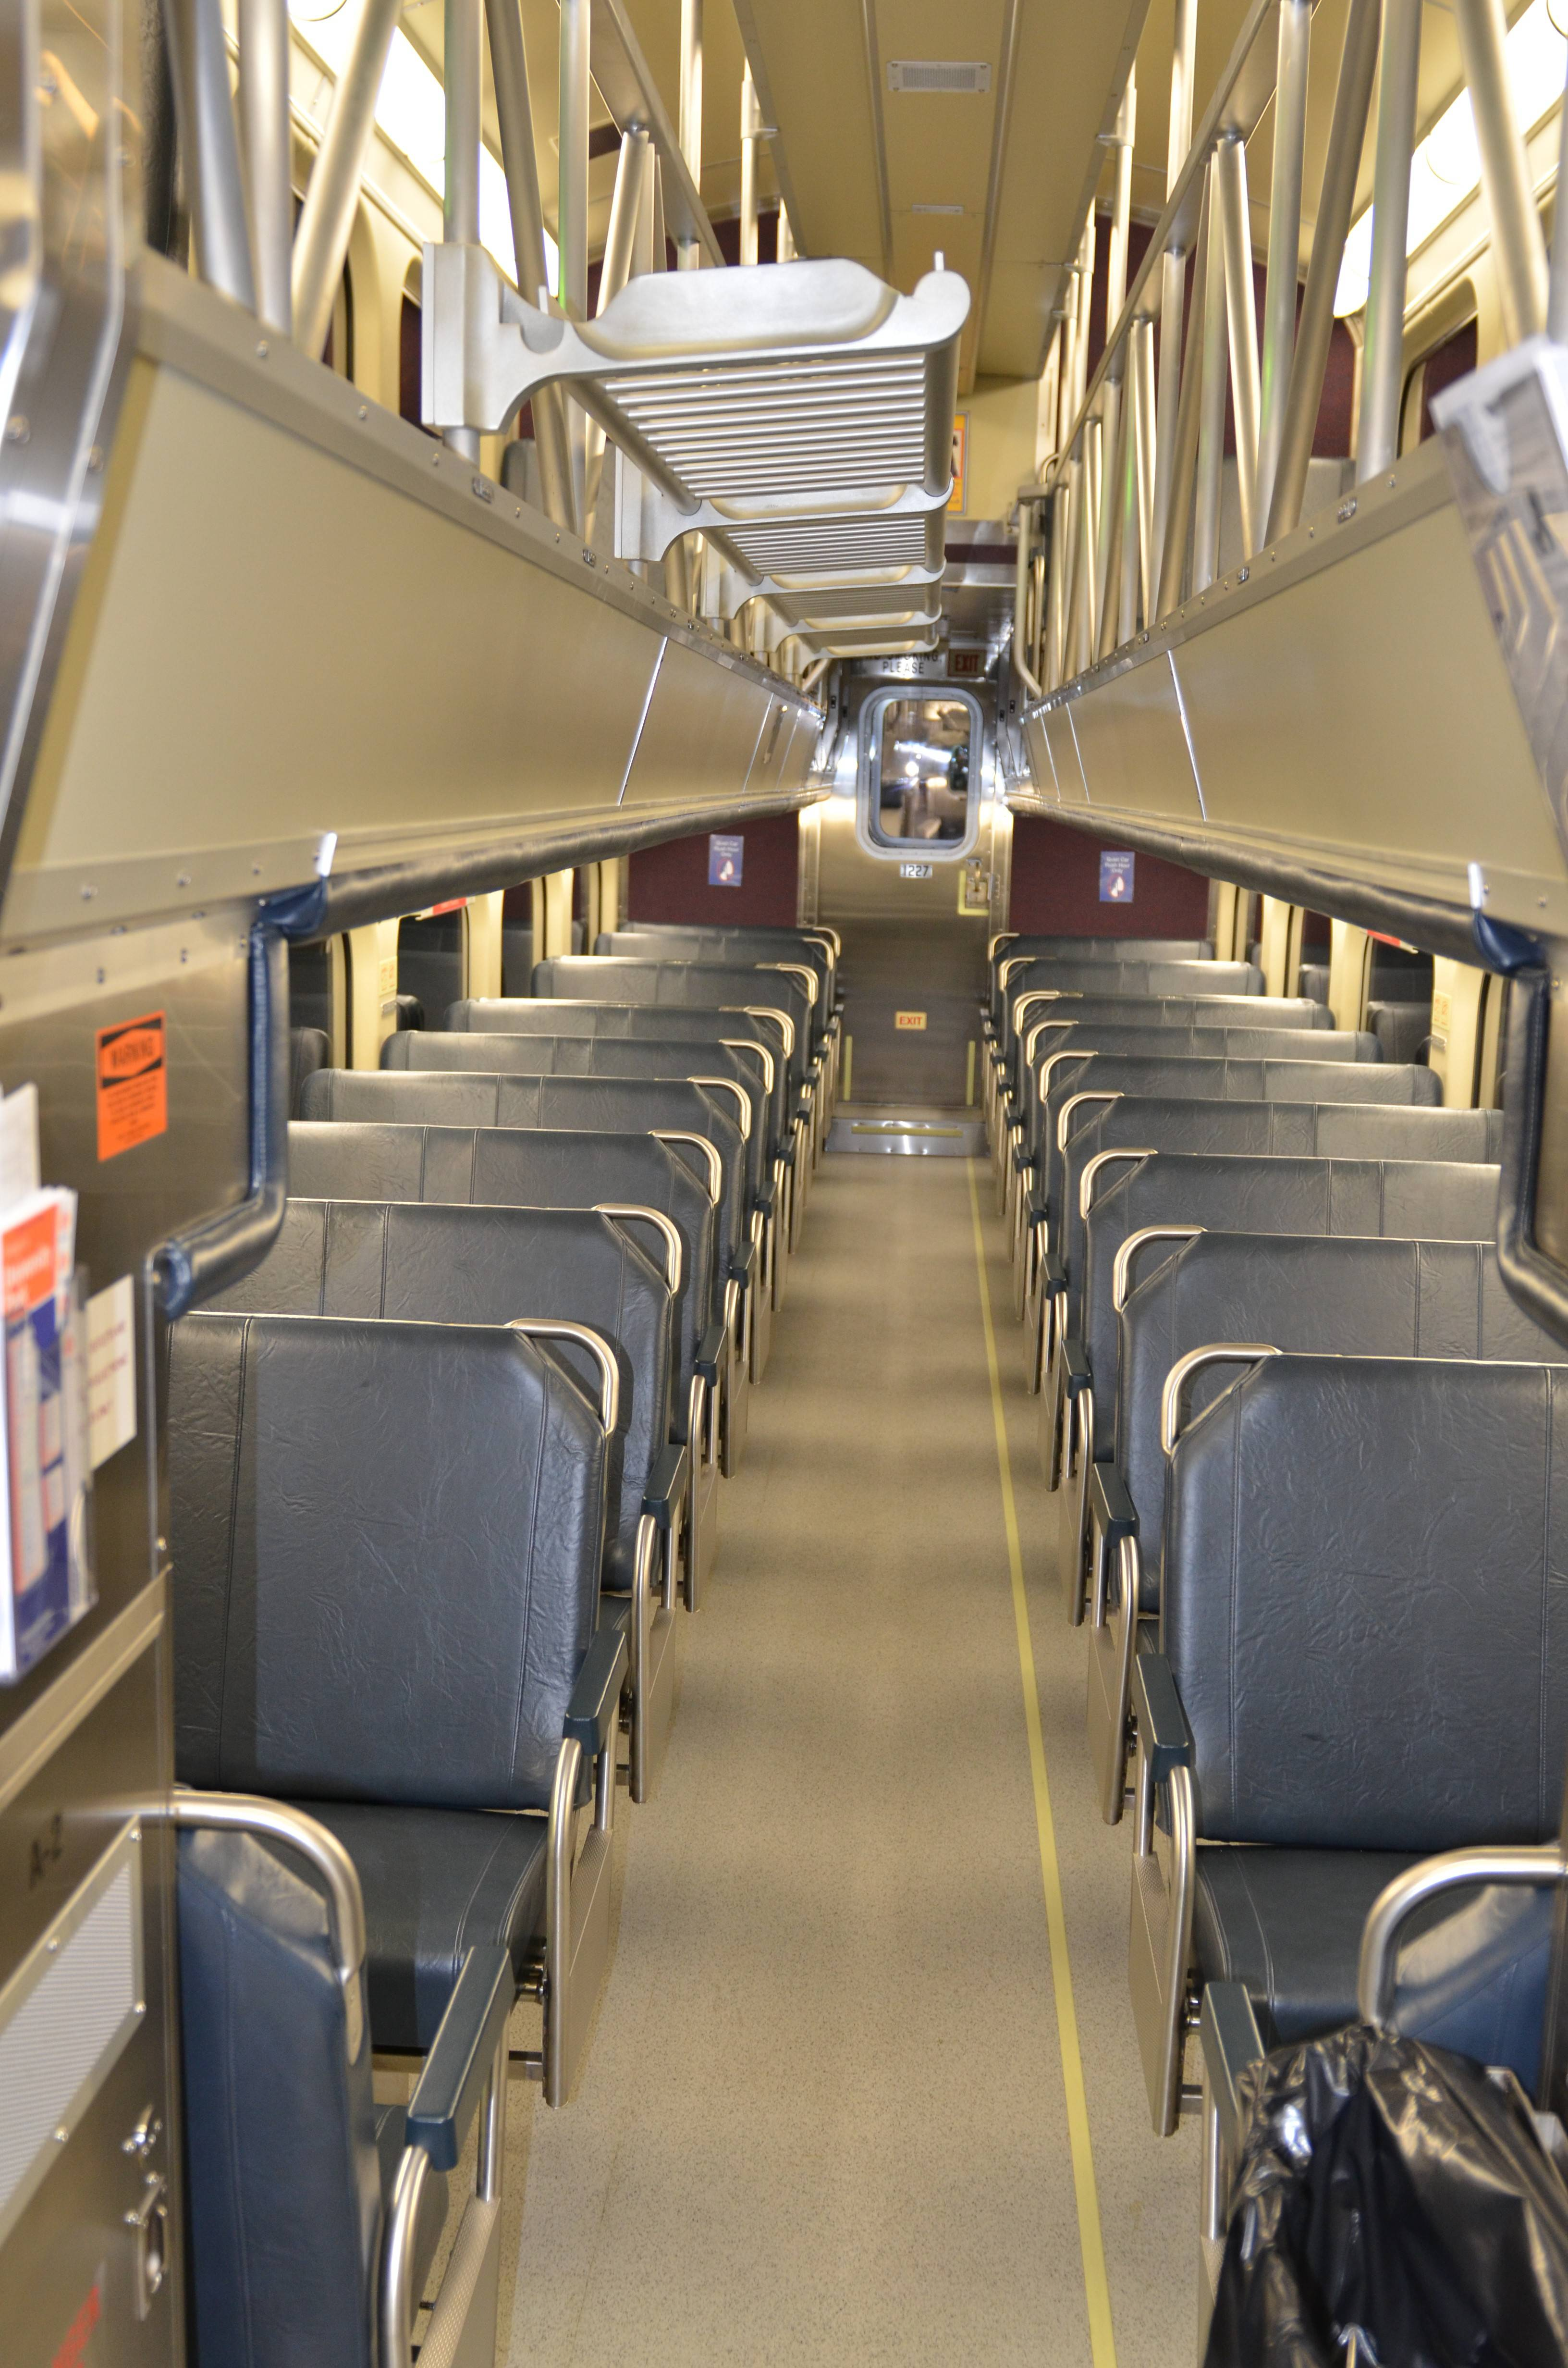 Metra is asking manufacturers to submit proposals for new railcars. The cars would have cup holders and arm rests, plus possibly enclosed top floors.